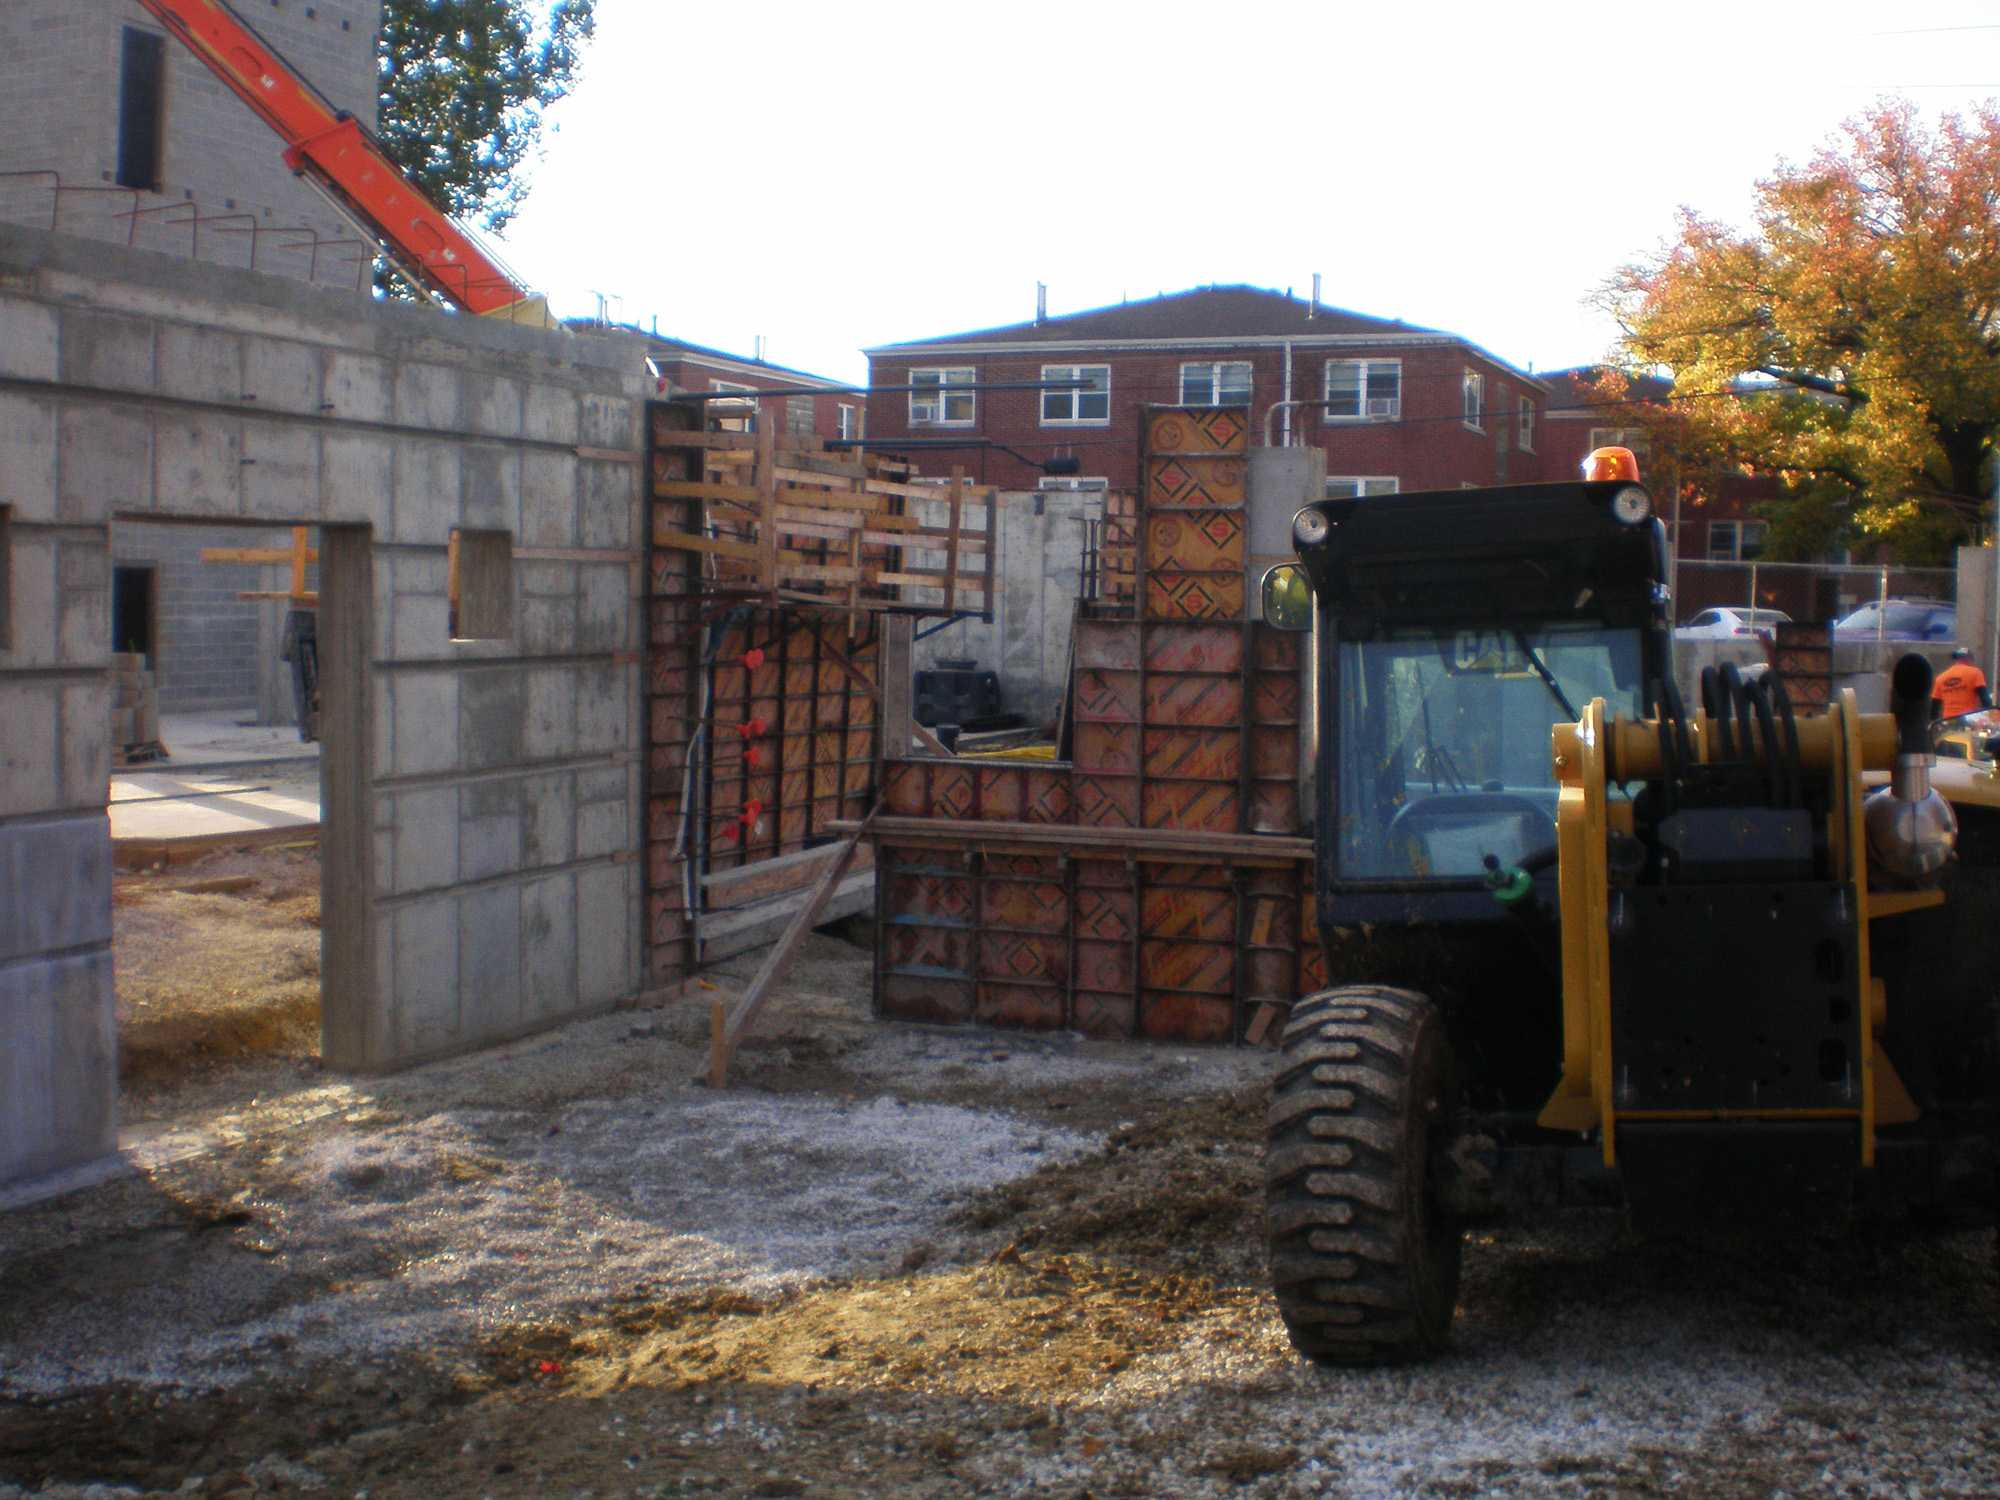 The new Lamda Chi house construction site.